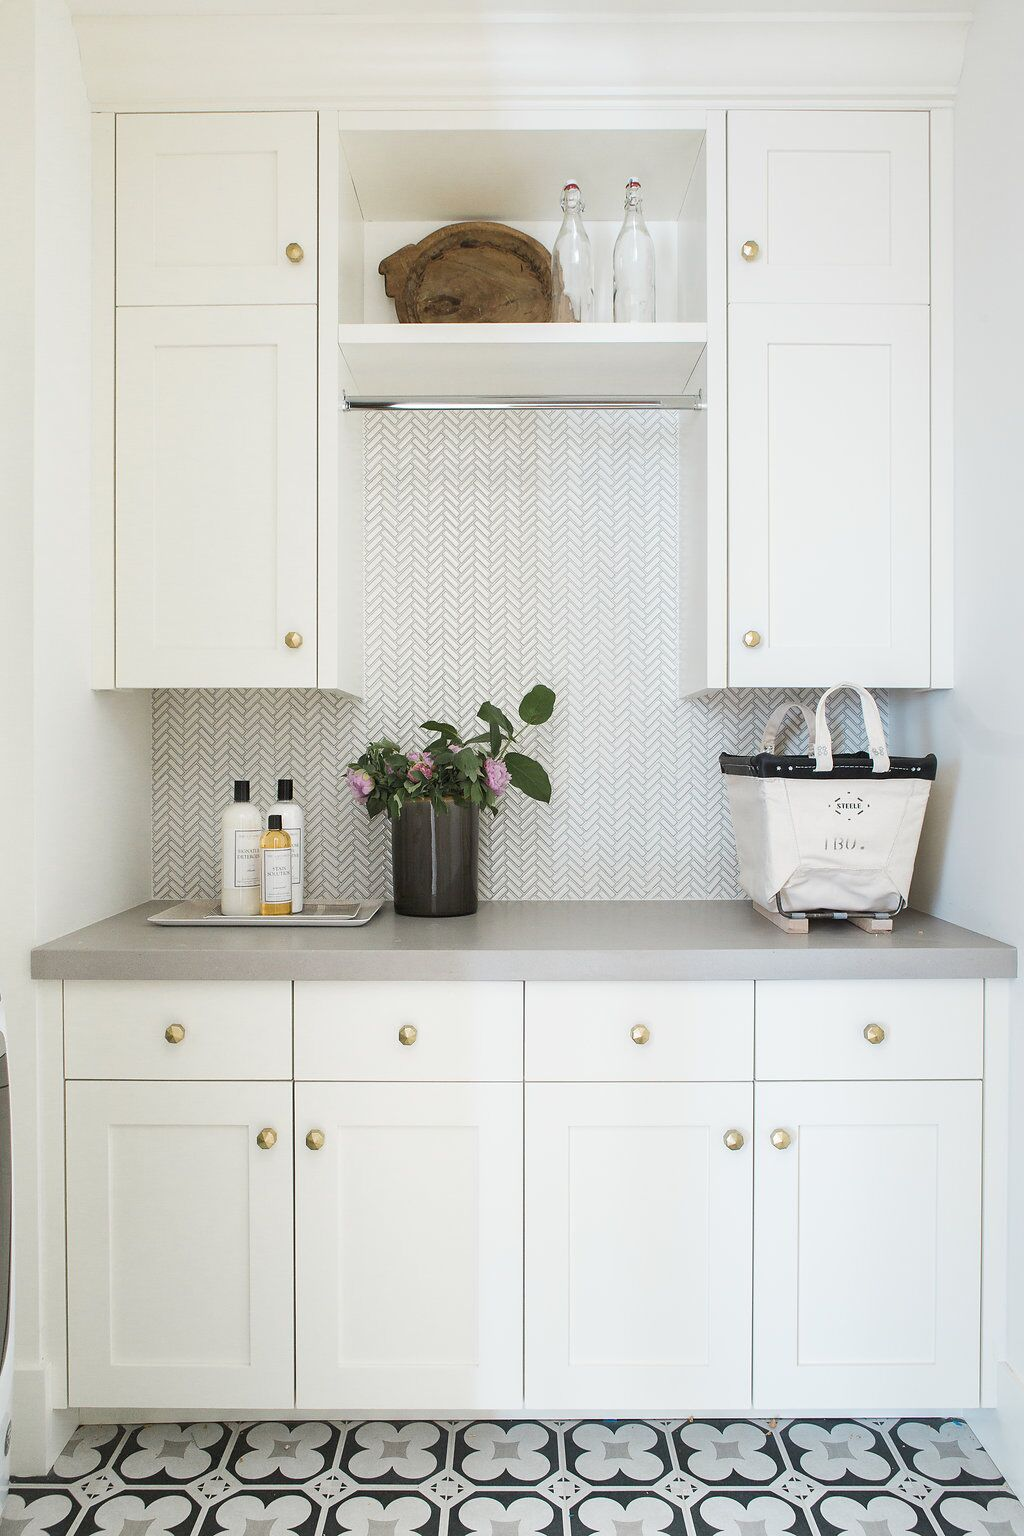 Laundry room with patterned wallpaper and concrete tile